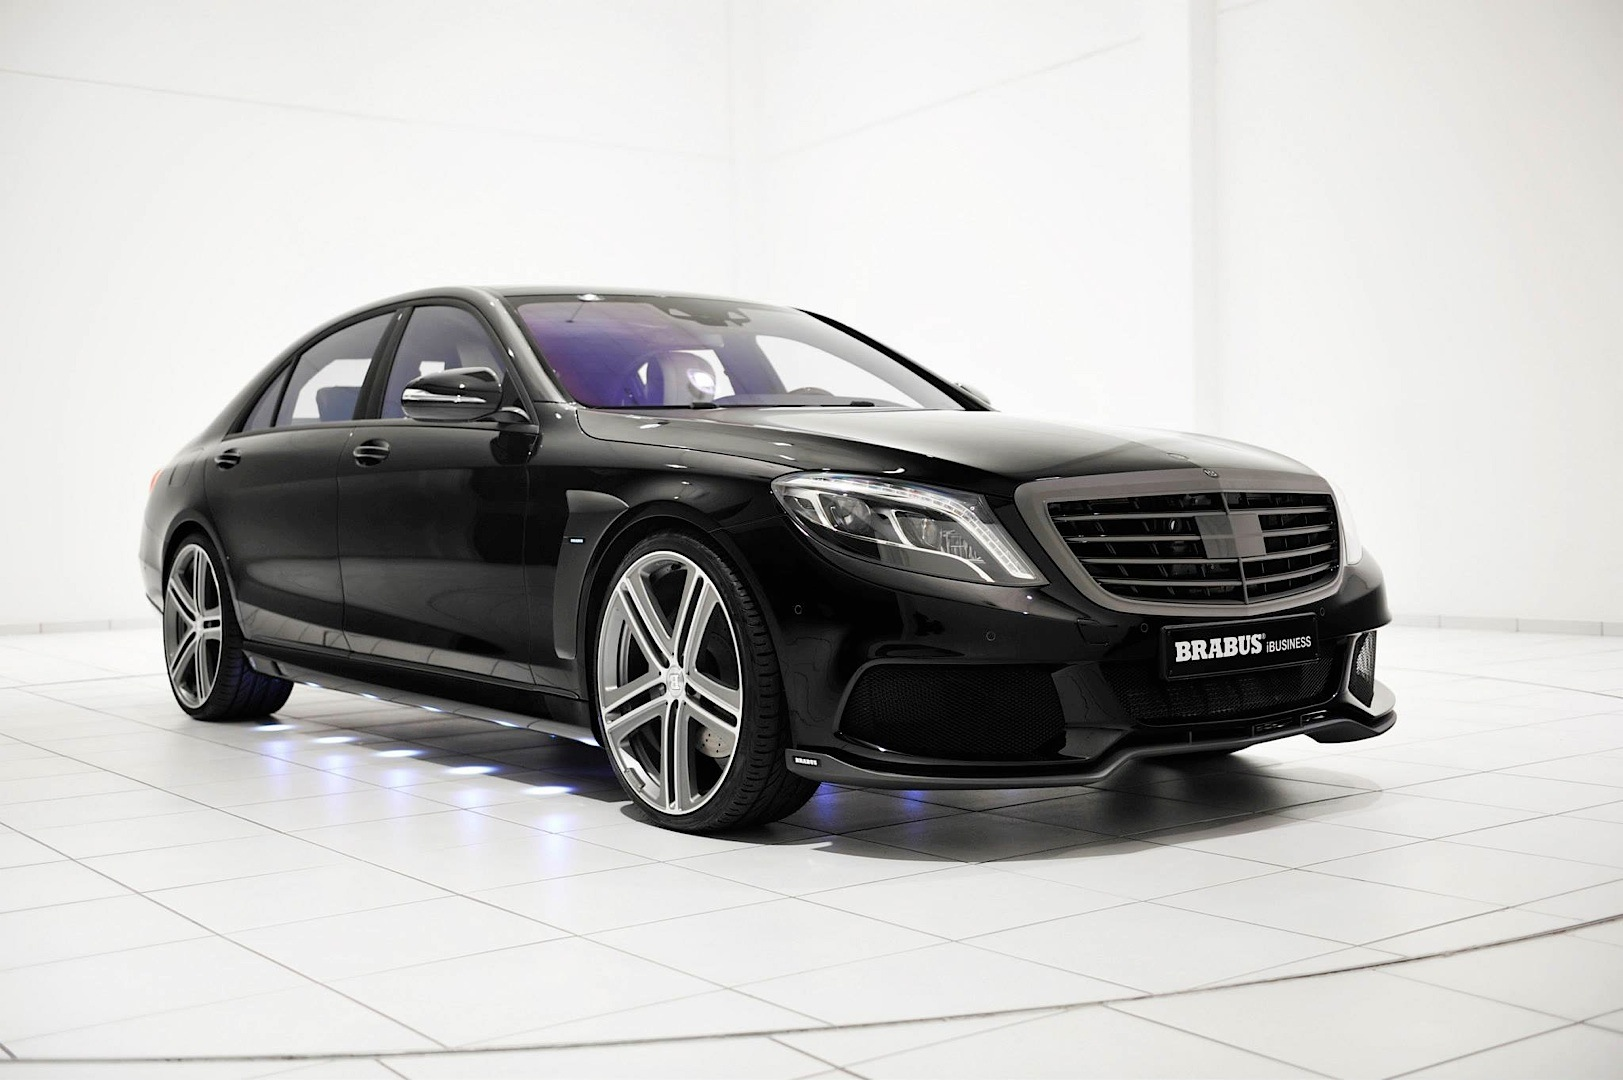 brabus ibusiness arrives in lesser s class w222 autoevolution. Black Bedroom Furniture Sets. Home Design Ideas